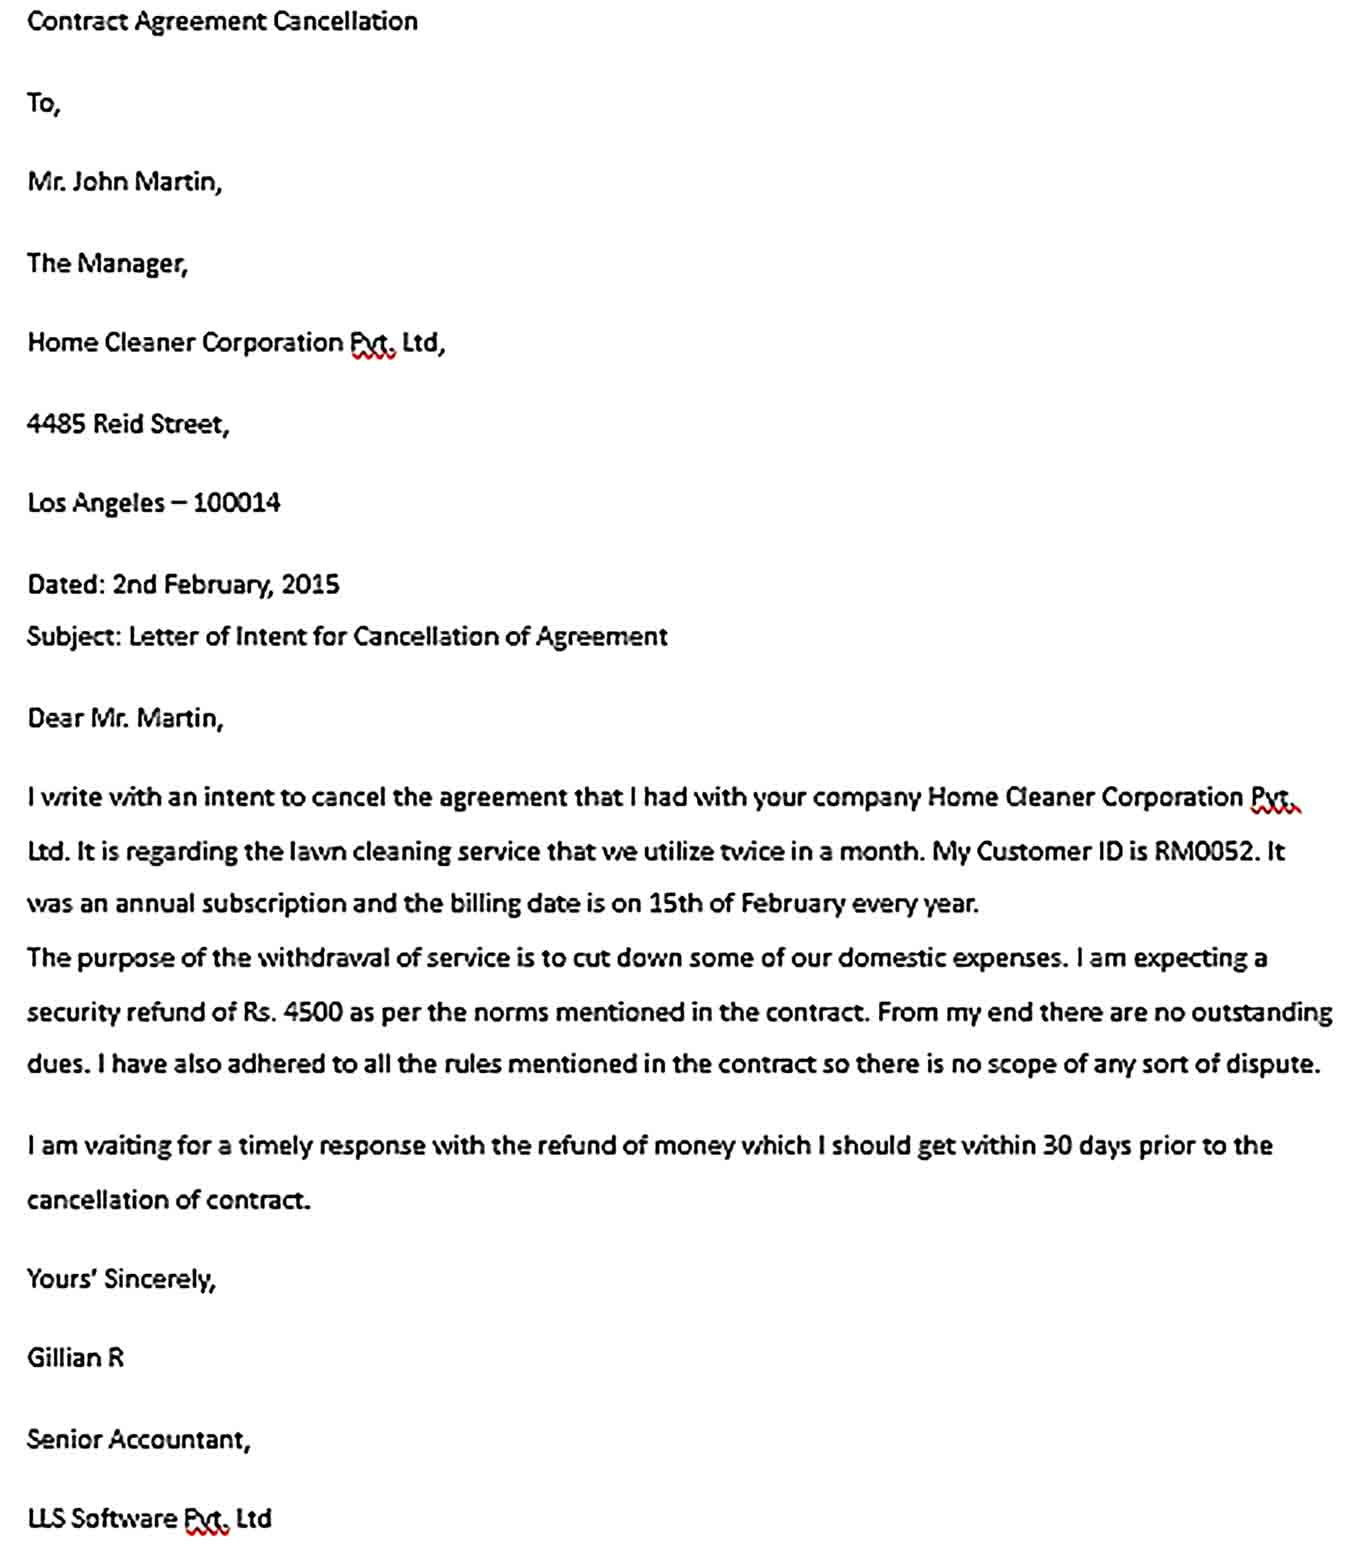 Sample Contract Agreement Cancellation